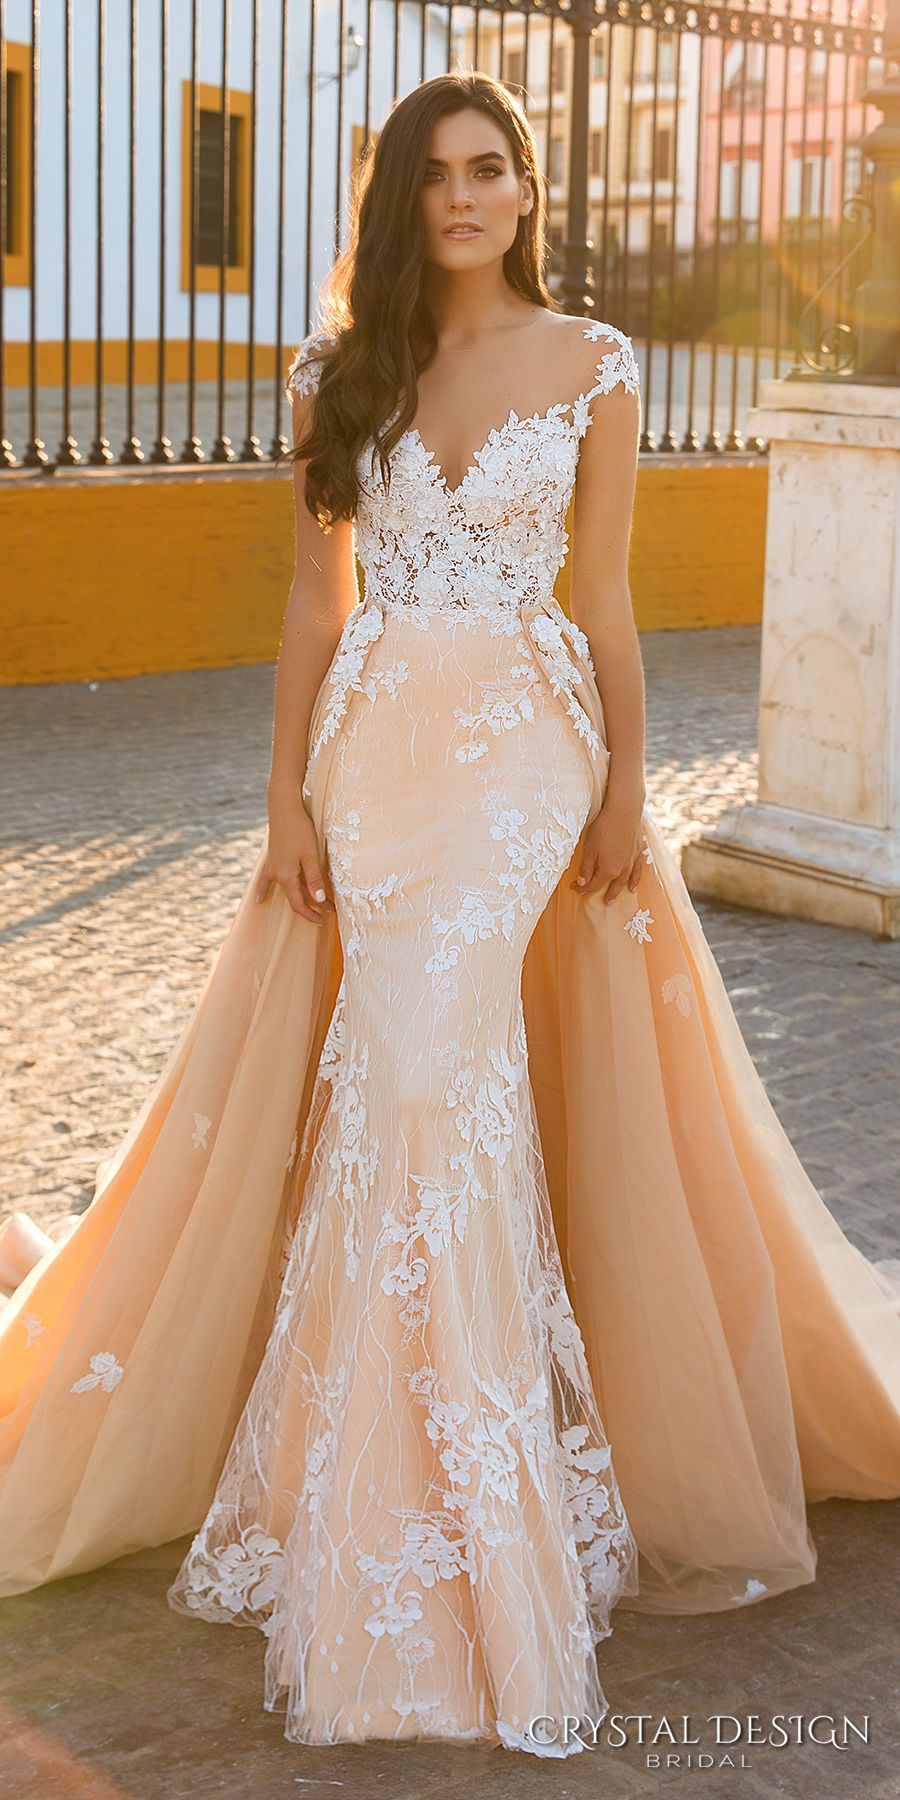 b2d93ca9bcd6 crystal design 2017 bridal cap sleeves deep sweetheart neckline heavily  embellished bodice elegant blush fit and flare wedding dress sheer back  long train ...